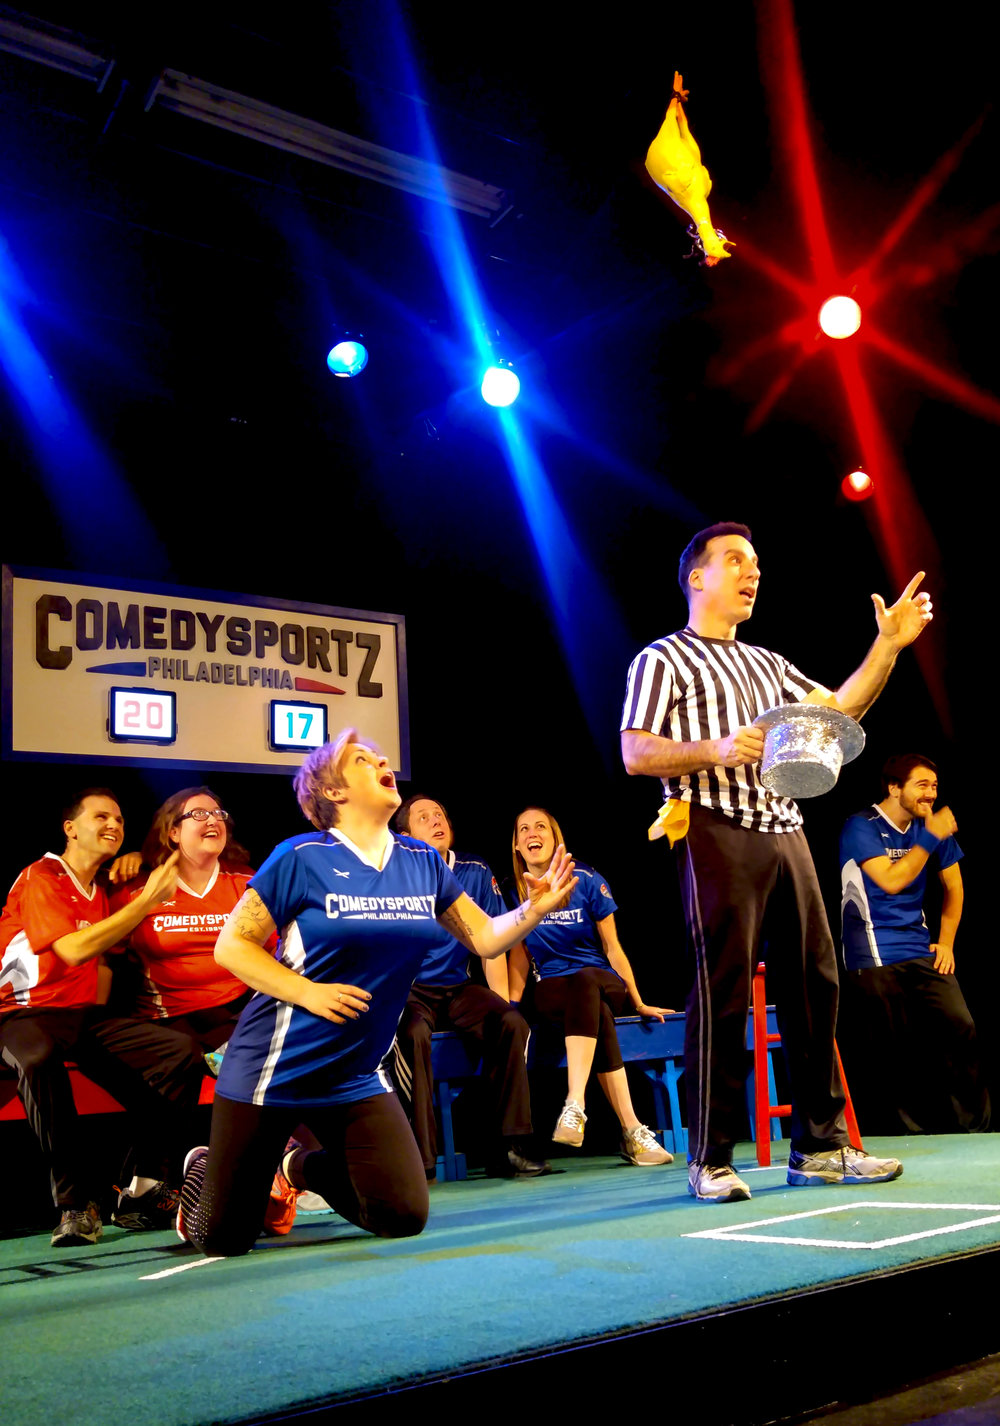 The ref and Players from ComedySportz celebrate New Year's @ ComedySportz Philadelphia